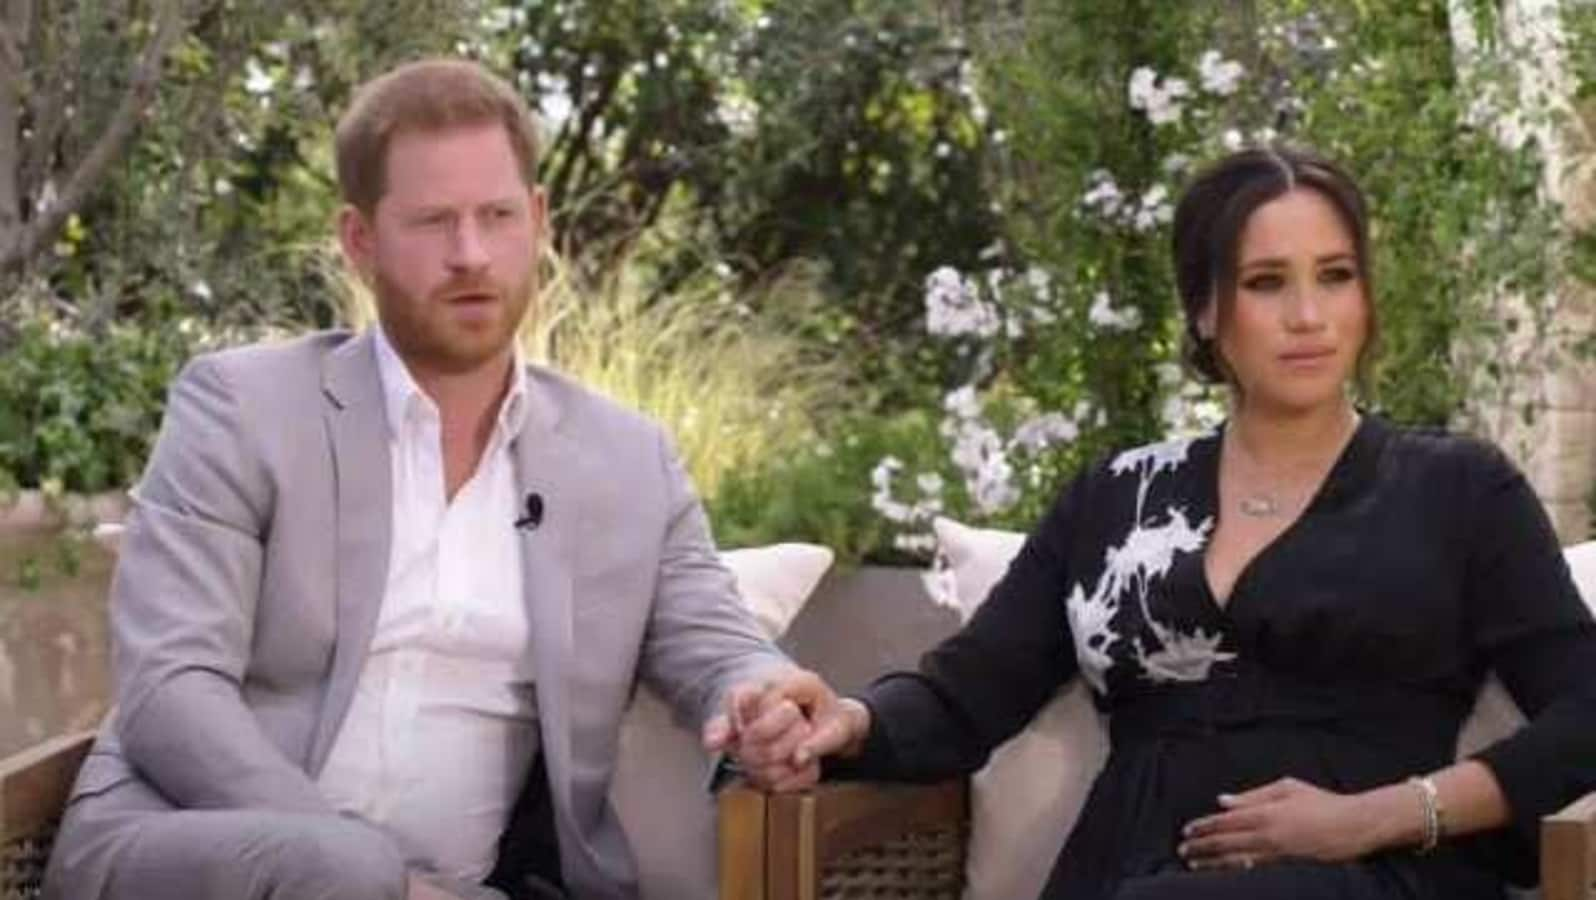 Prince Harry-Meghan Markle to Oprah: 'Diana went through this alone, but we have each other' - Hindustan Times